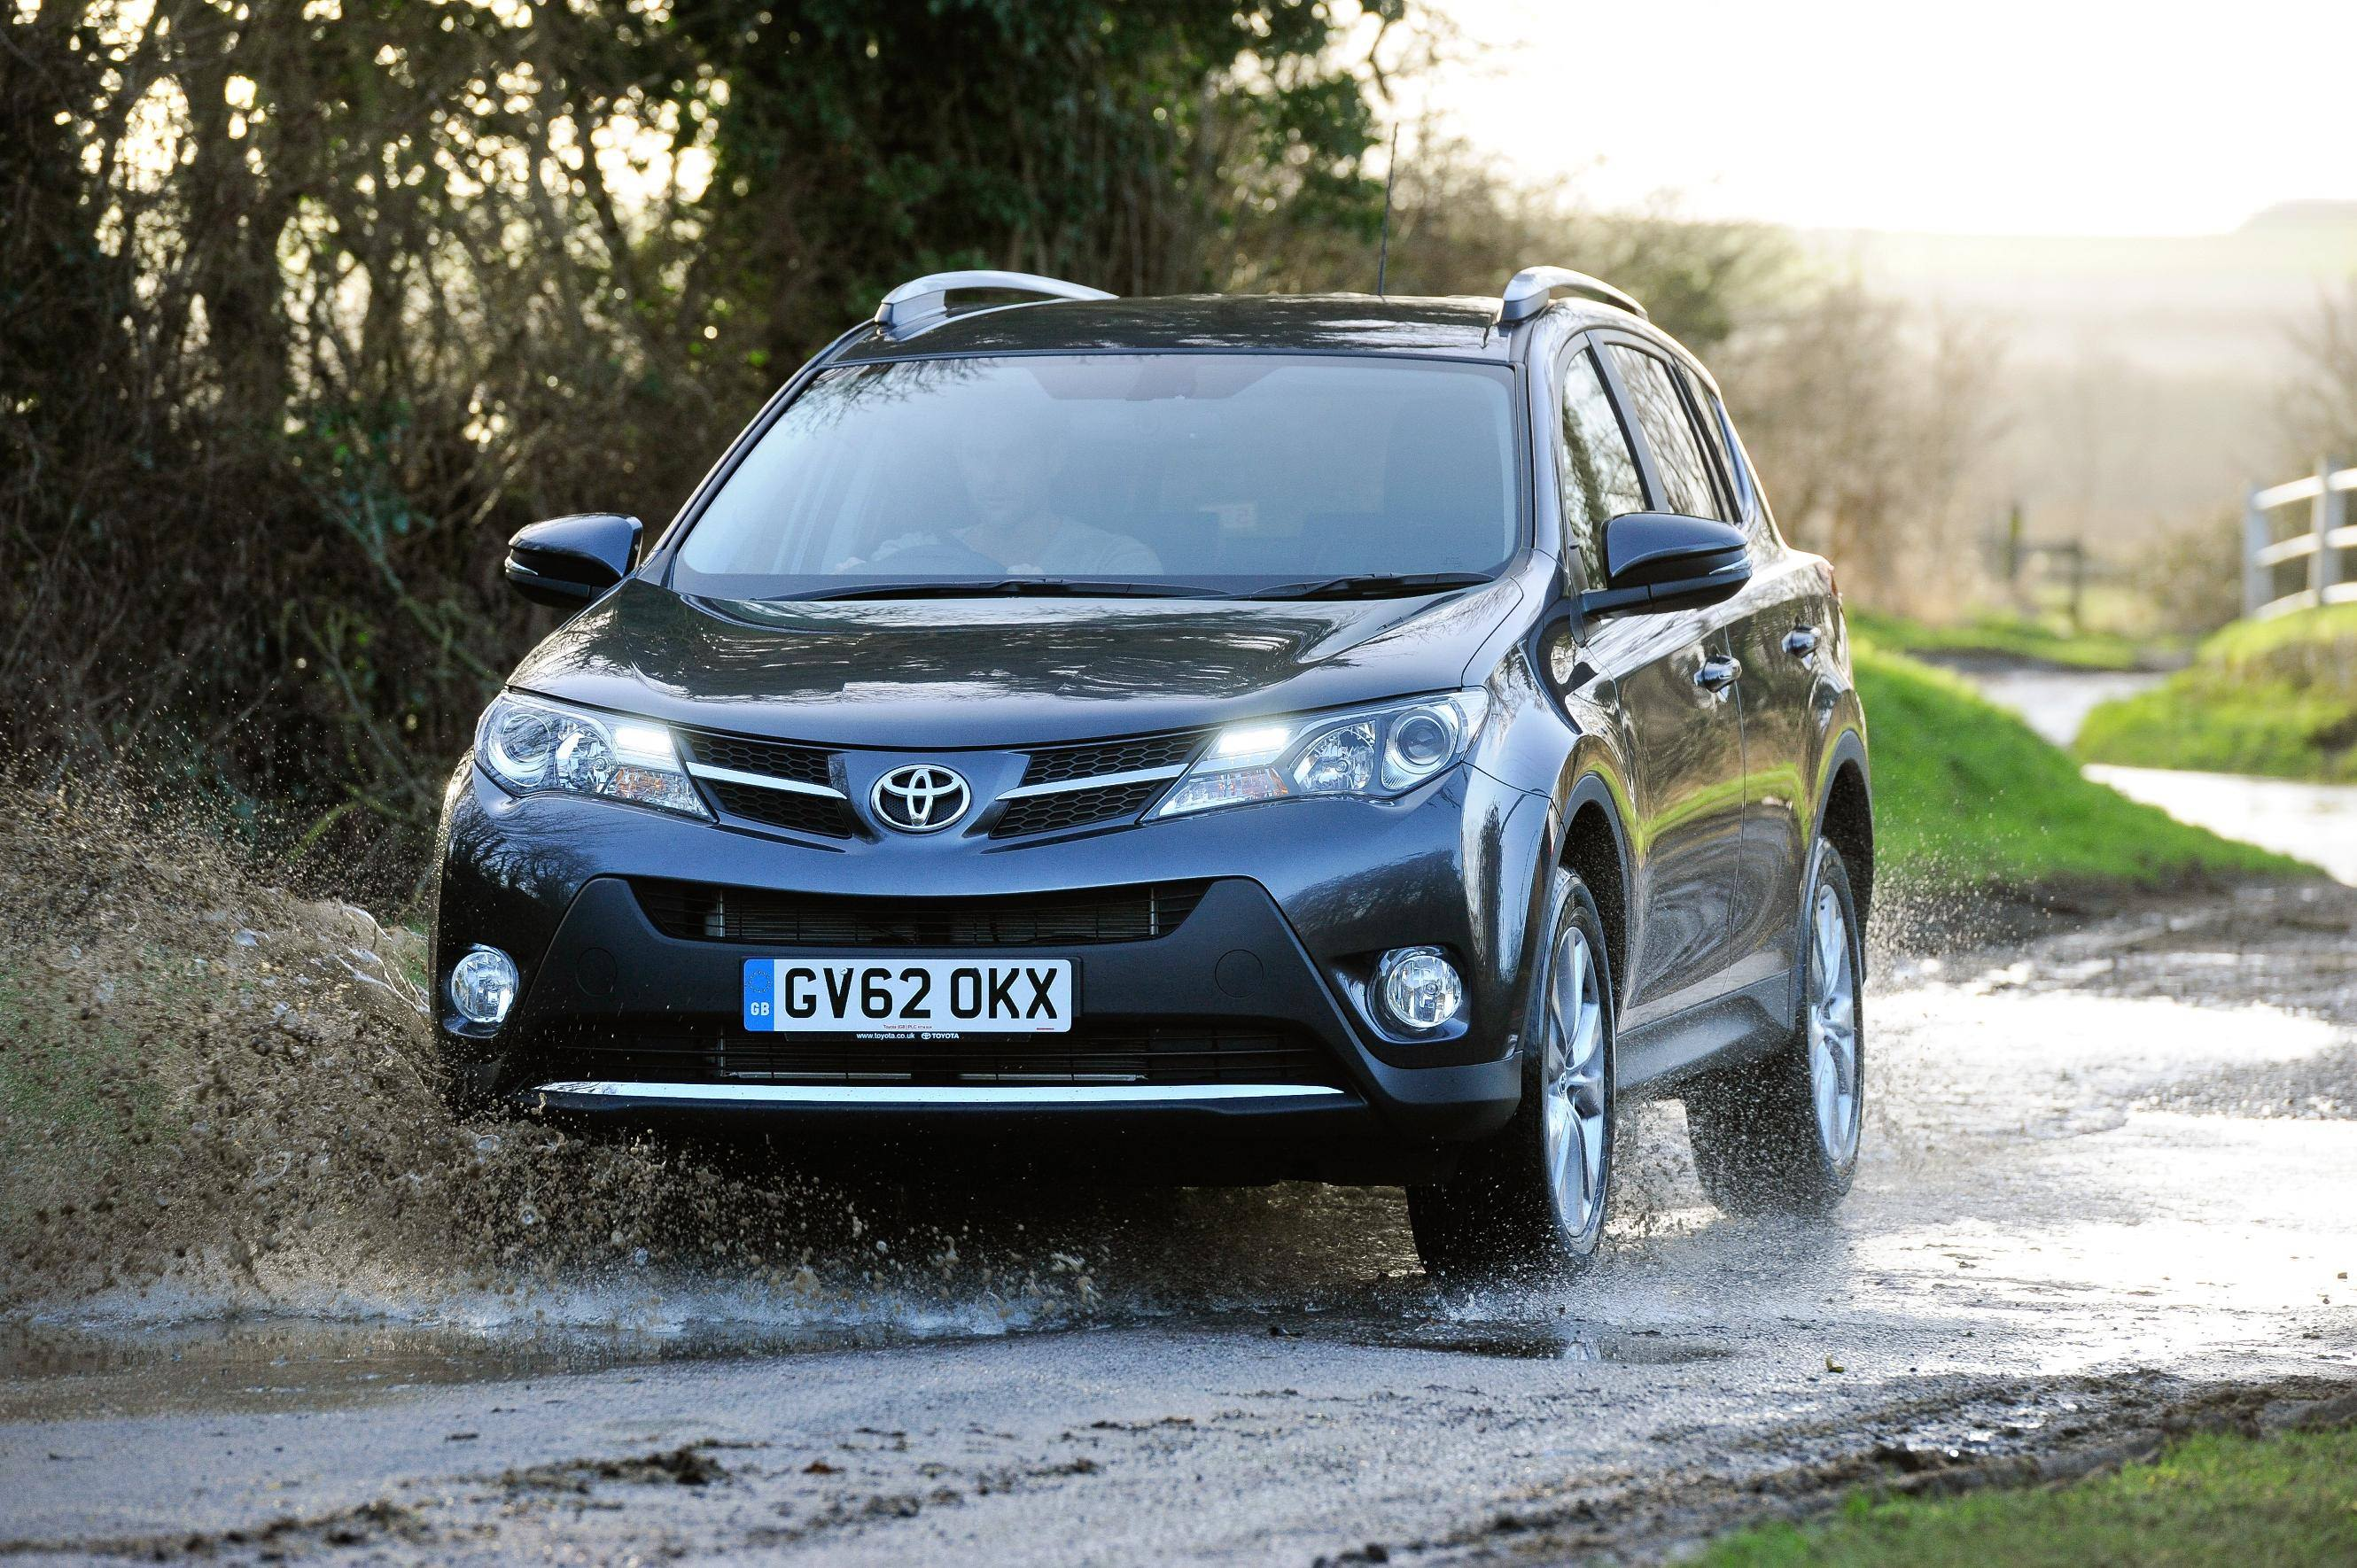 image of a black toyota rav4 car drivng through a puddle